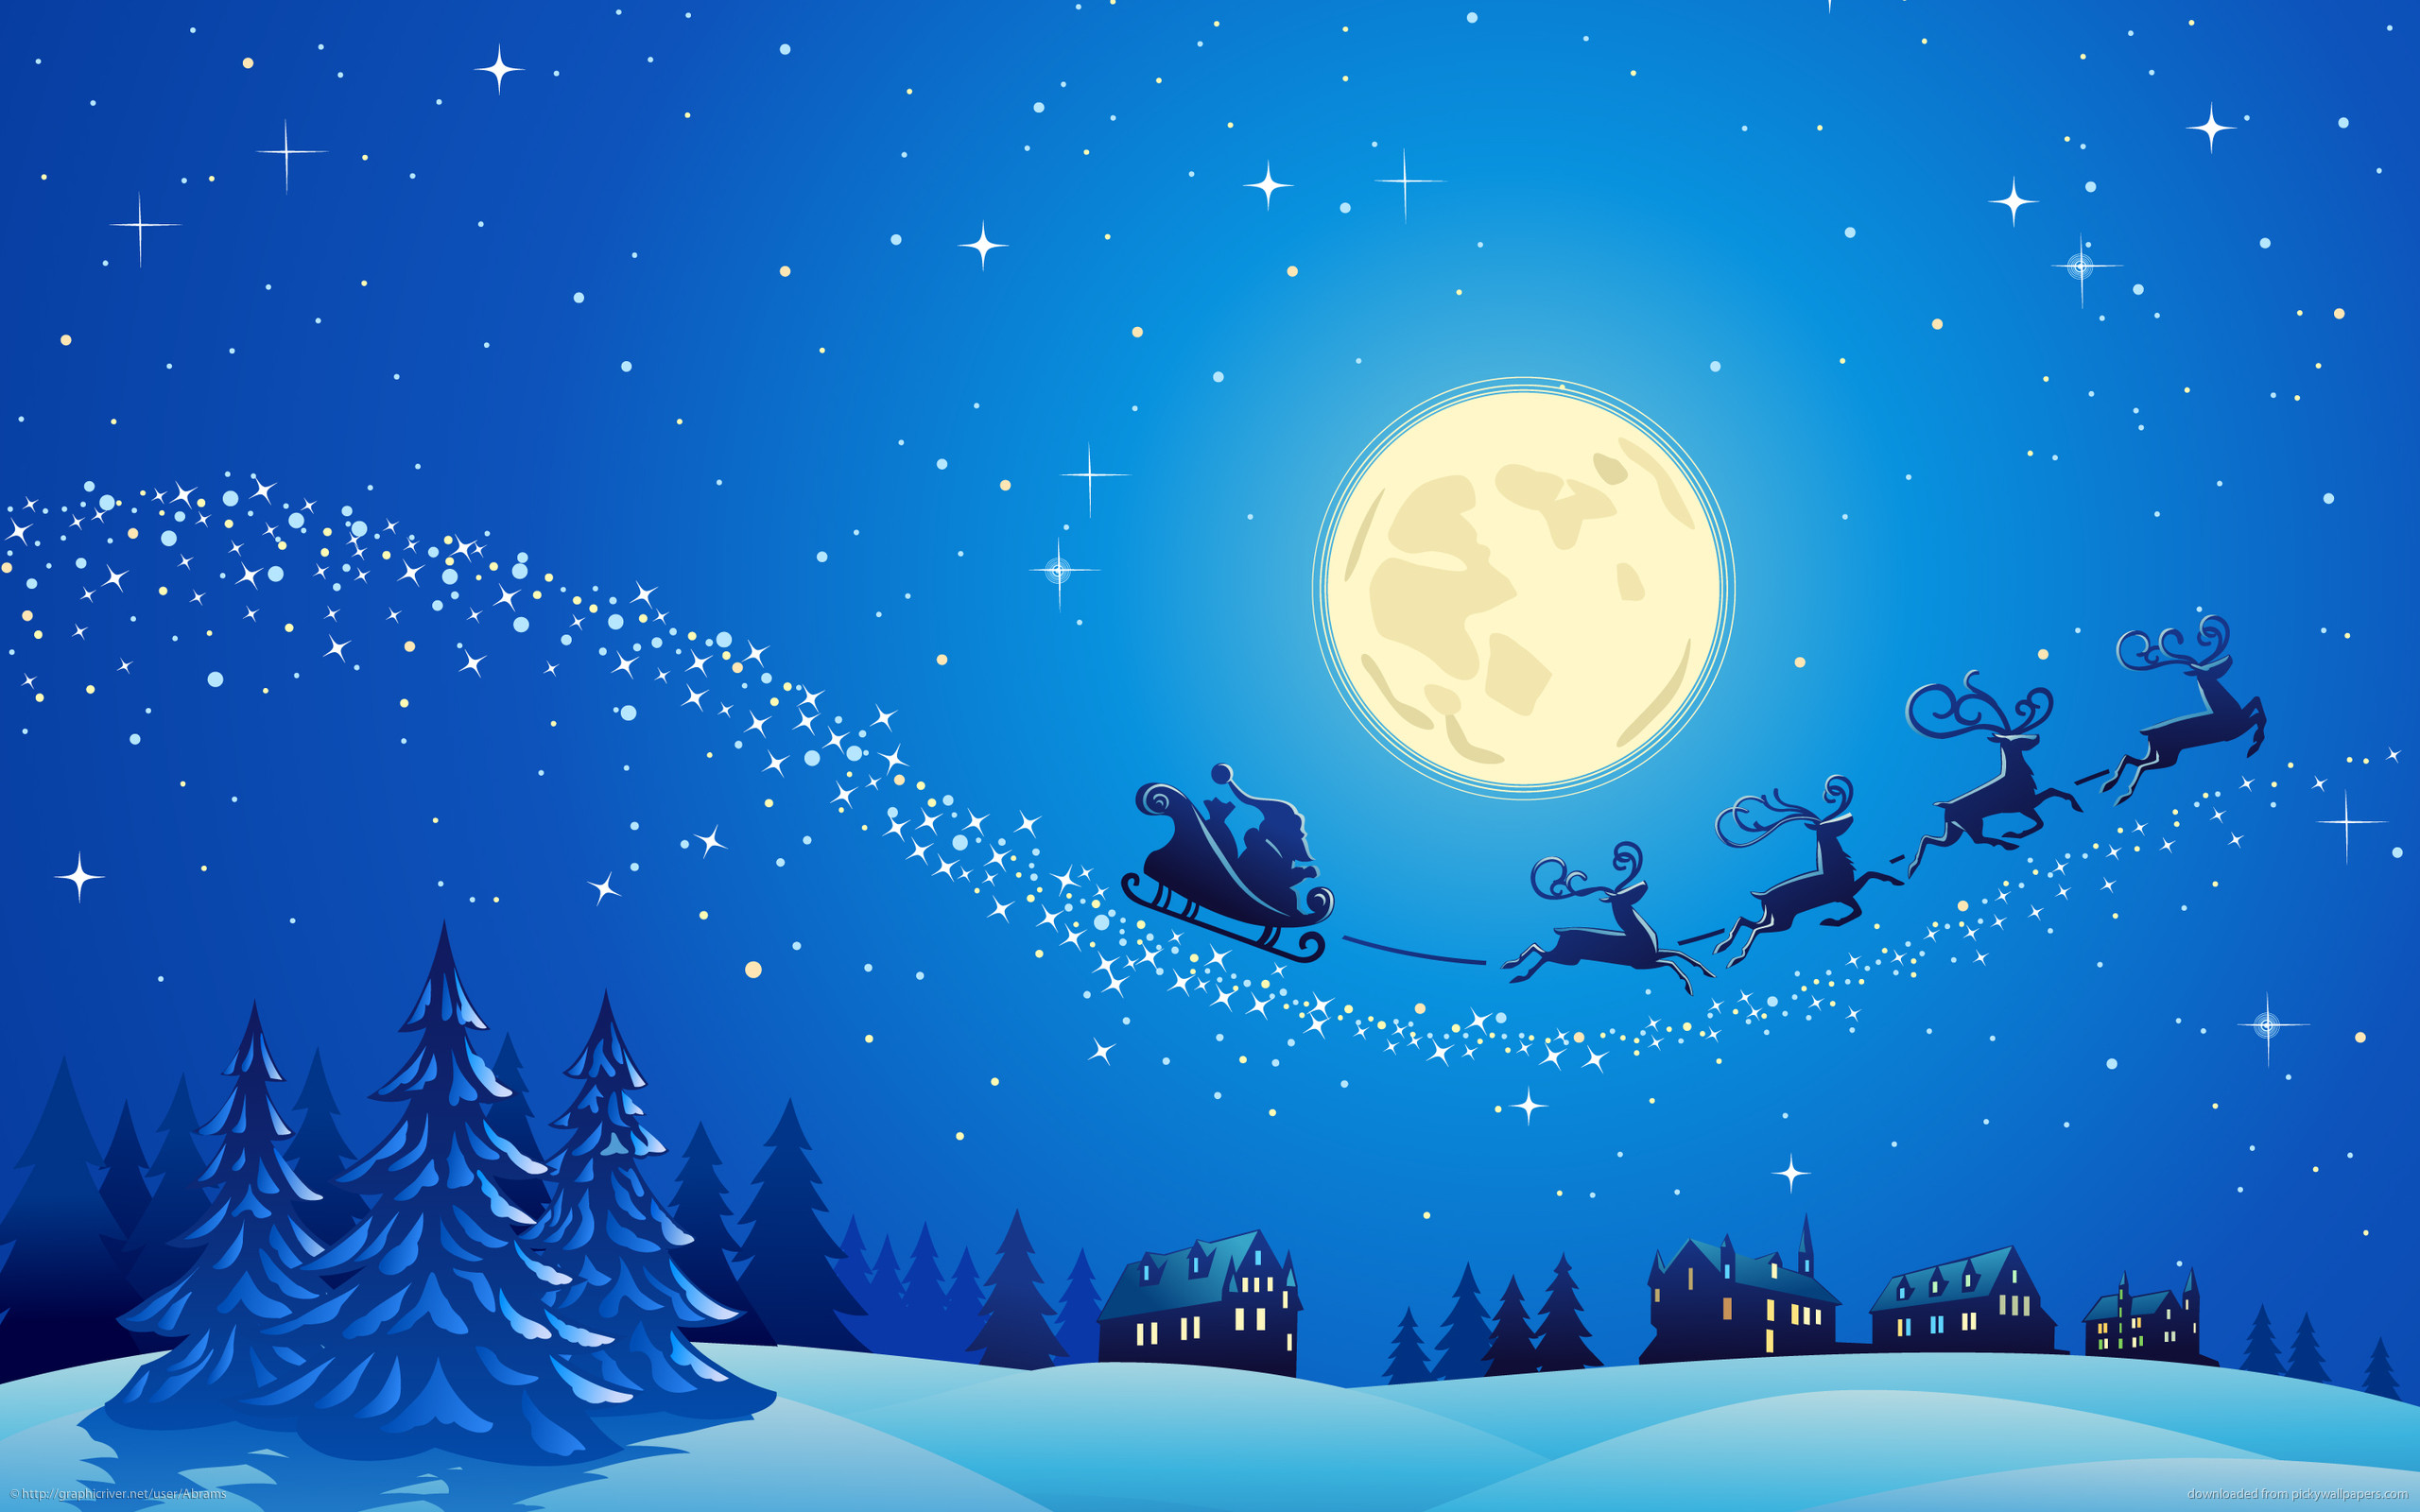 2560x1600 Christmas Eve Santa Claus Raindeer Sleigh Moon Desktop Wallpaper Uploaded  by DesktopWalls